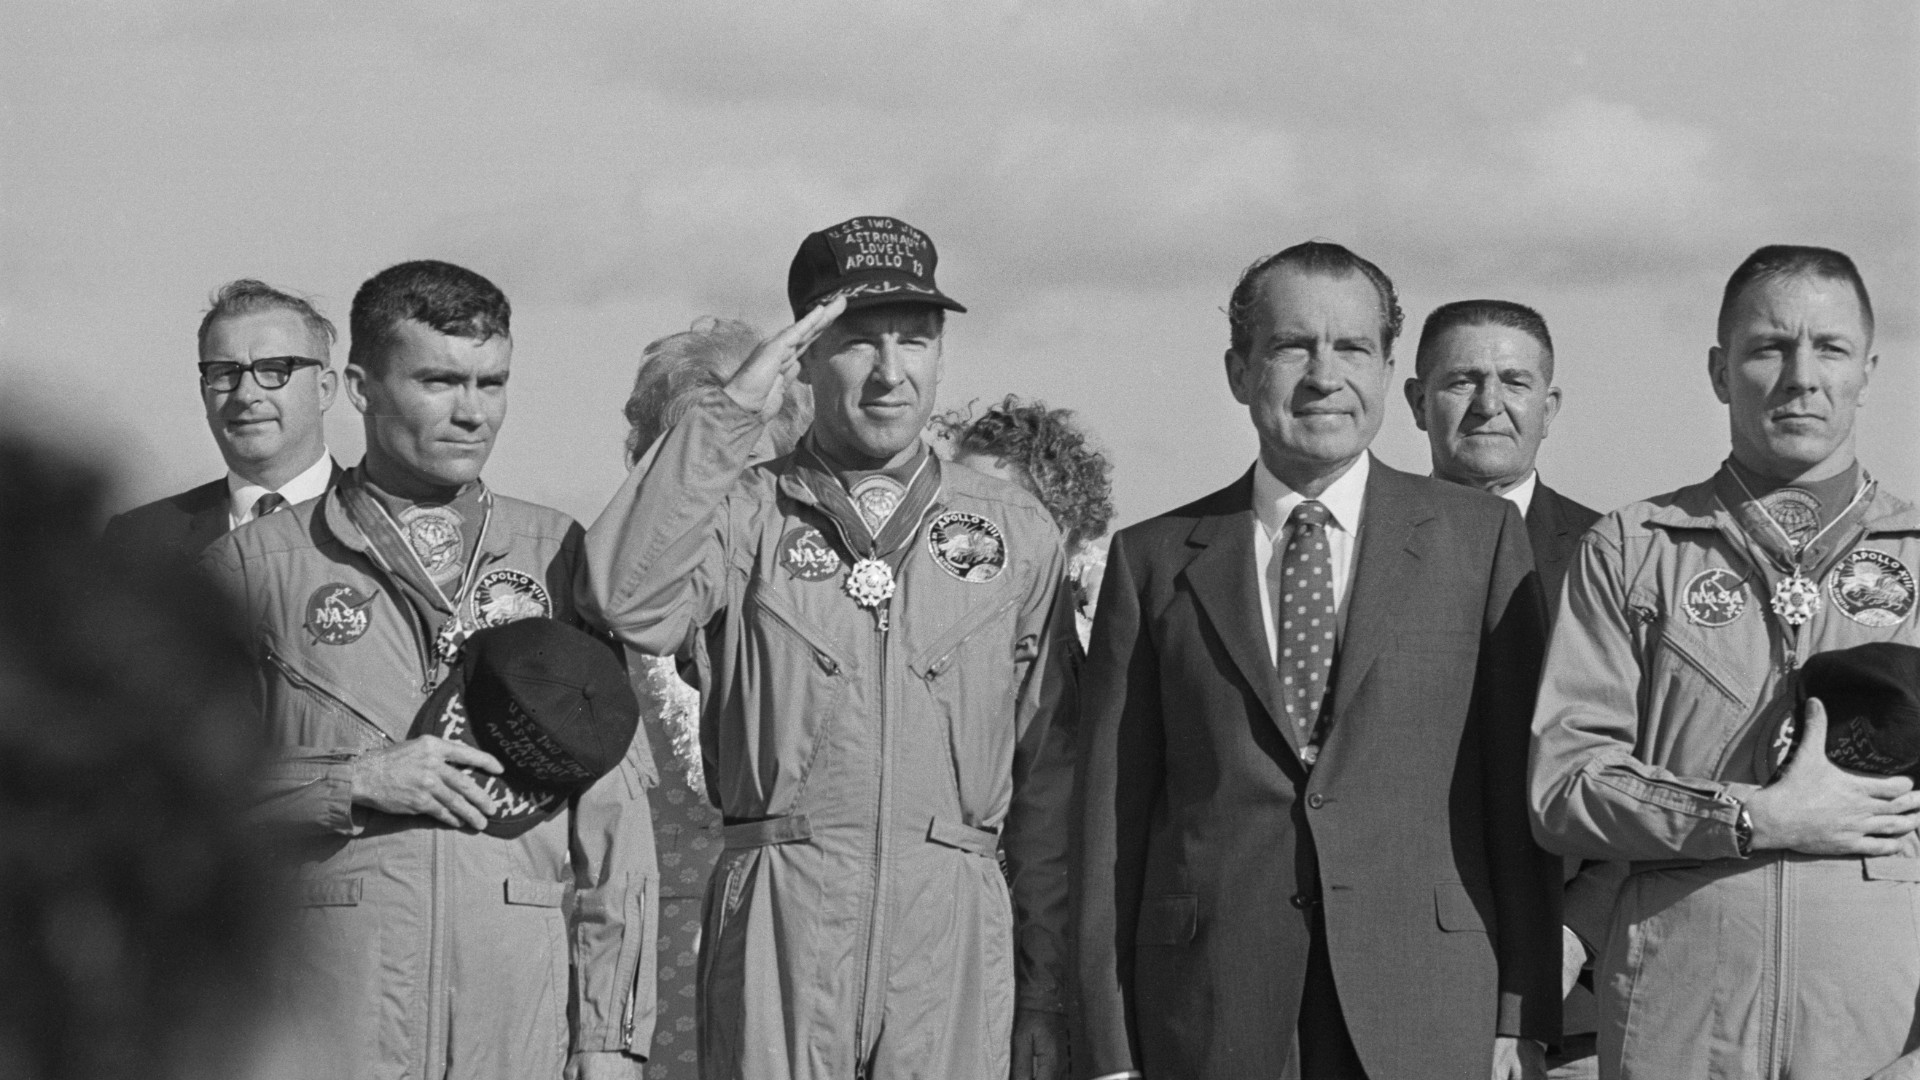 US President Richard Nixon meets the Apollo 13 astronauts in Honolulu, Hawaii, after their safe return to Earth, 23rd April 1970. From left to right (front row) Fred Haise, Jim Lovell, Richard Nixon (1913 - 1994) and Jack Swigert (1931 - 1982). (Harry Benson/Daily Express/Getty Images)